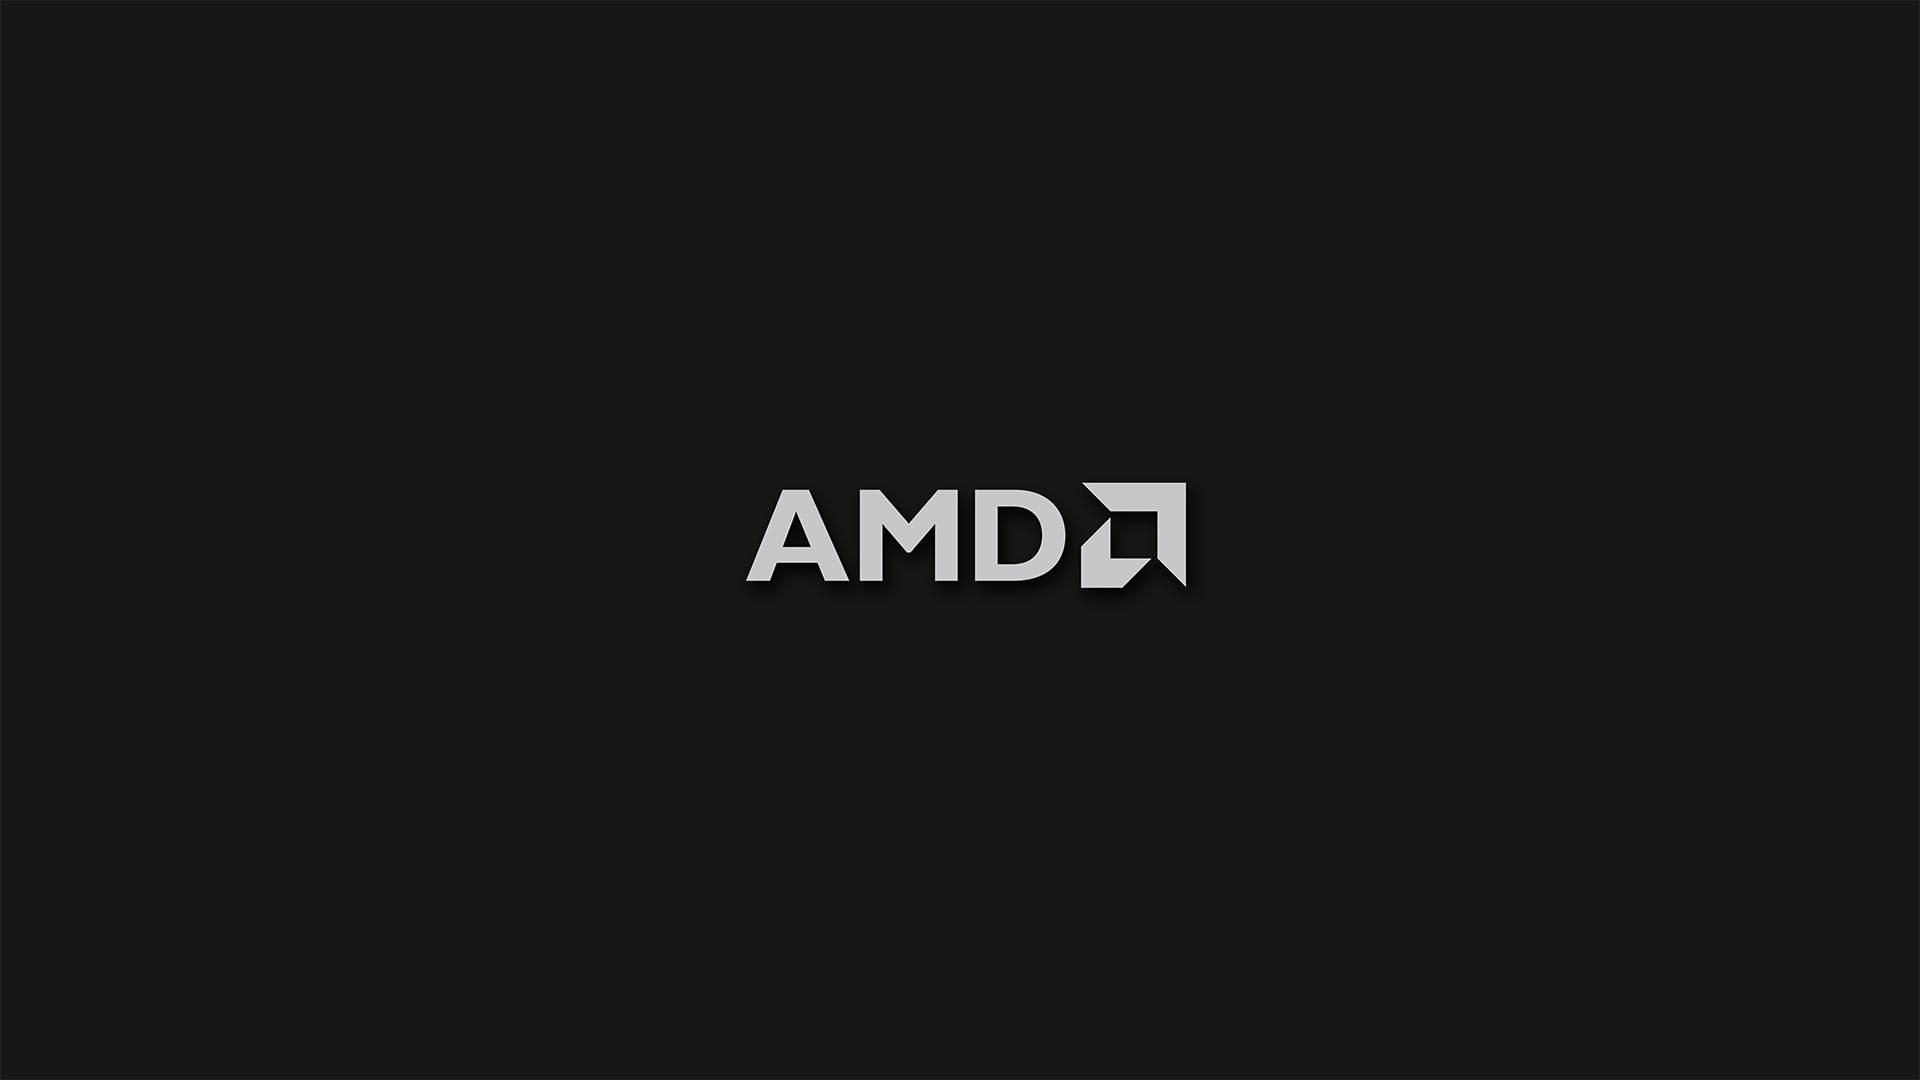 Amd 4k Wallpapers Top Free Amd 4k Backgrounds Wallpaperaccess